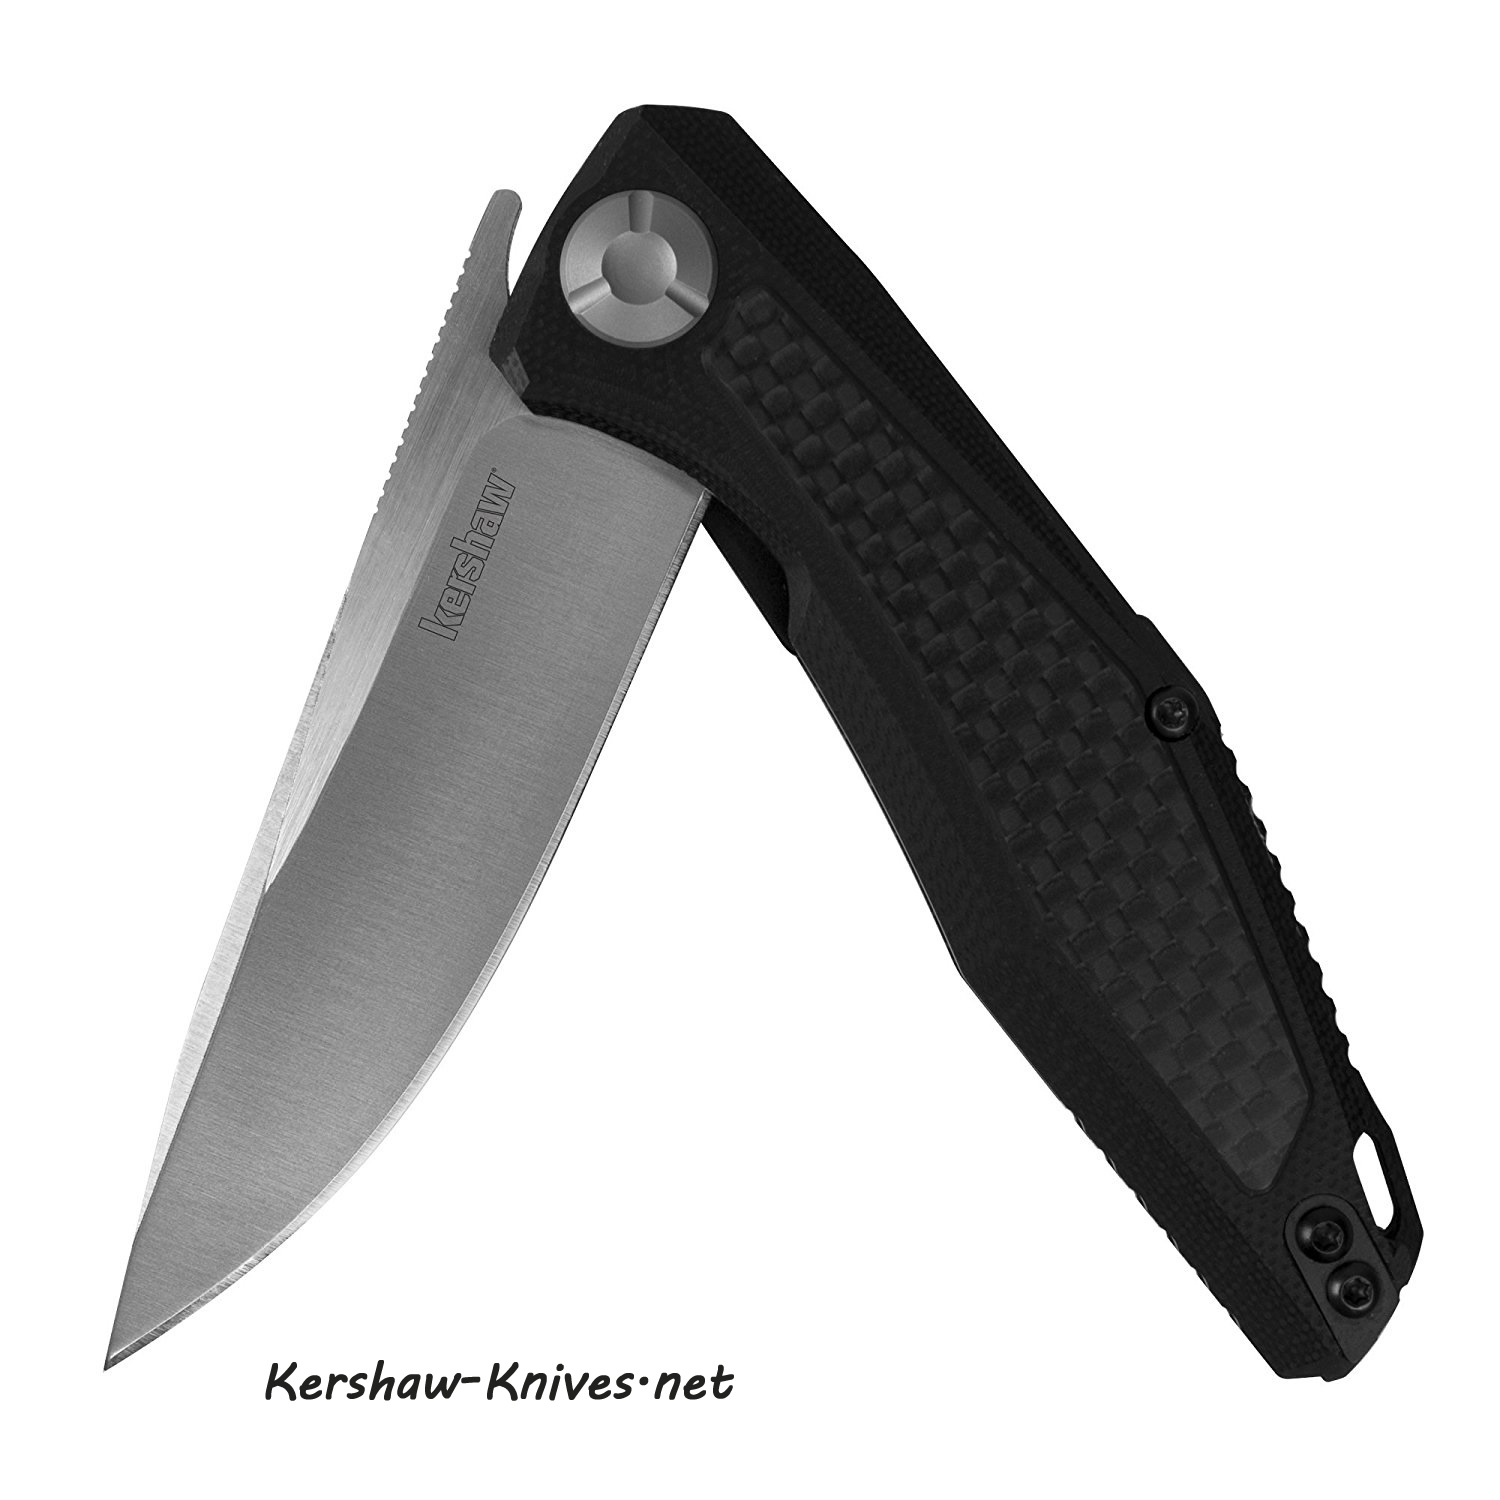 Kershaw 4037 Atmos Flipper Knife with Carbon Fiber Handle